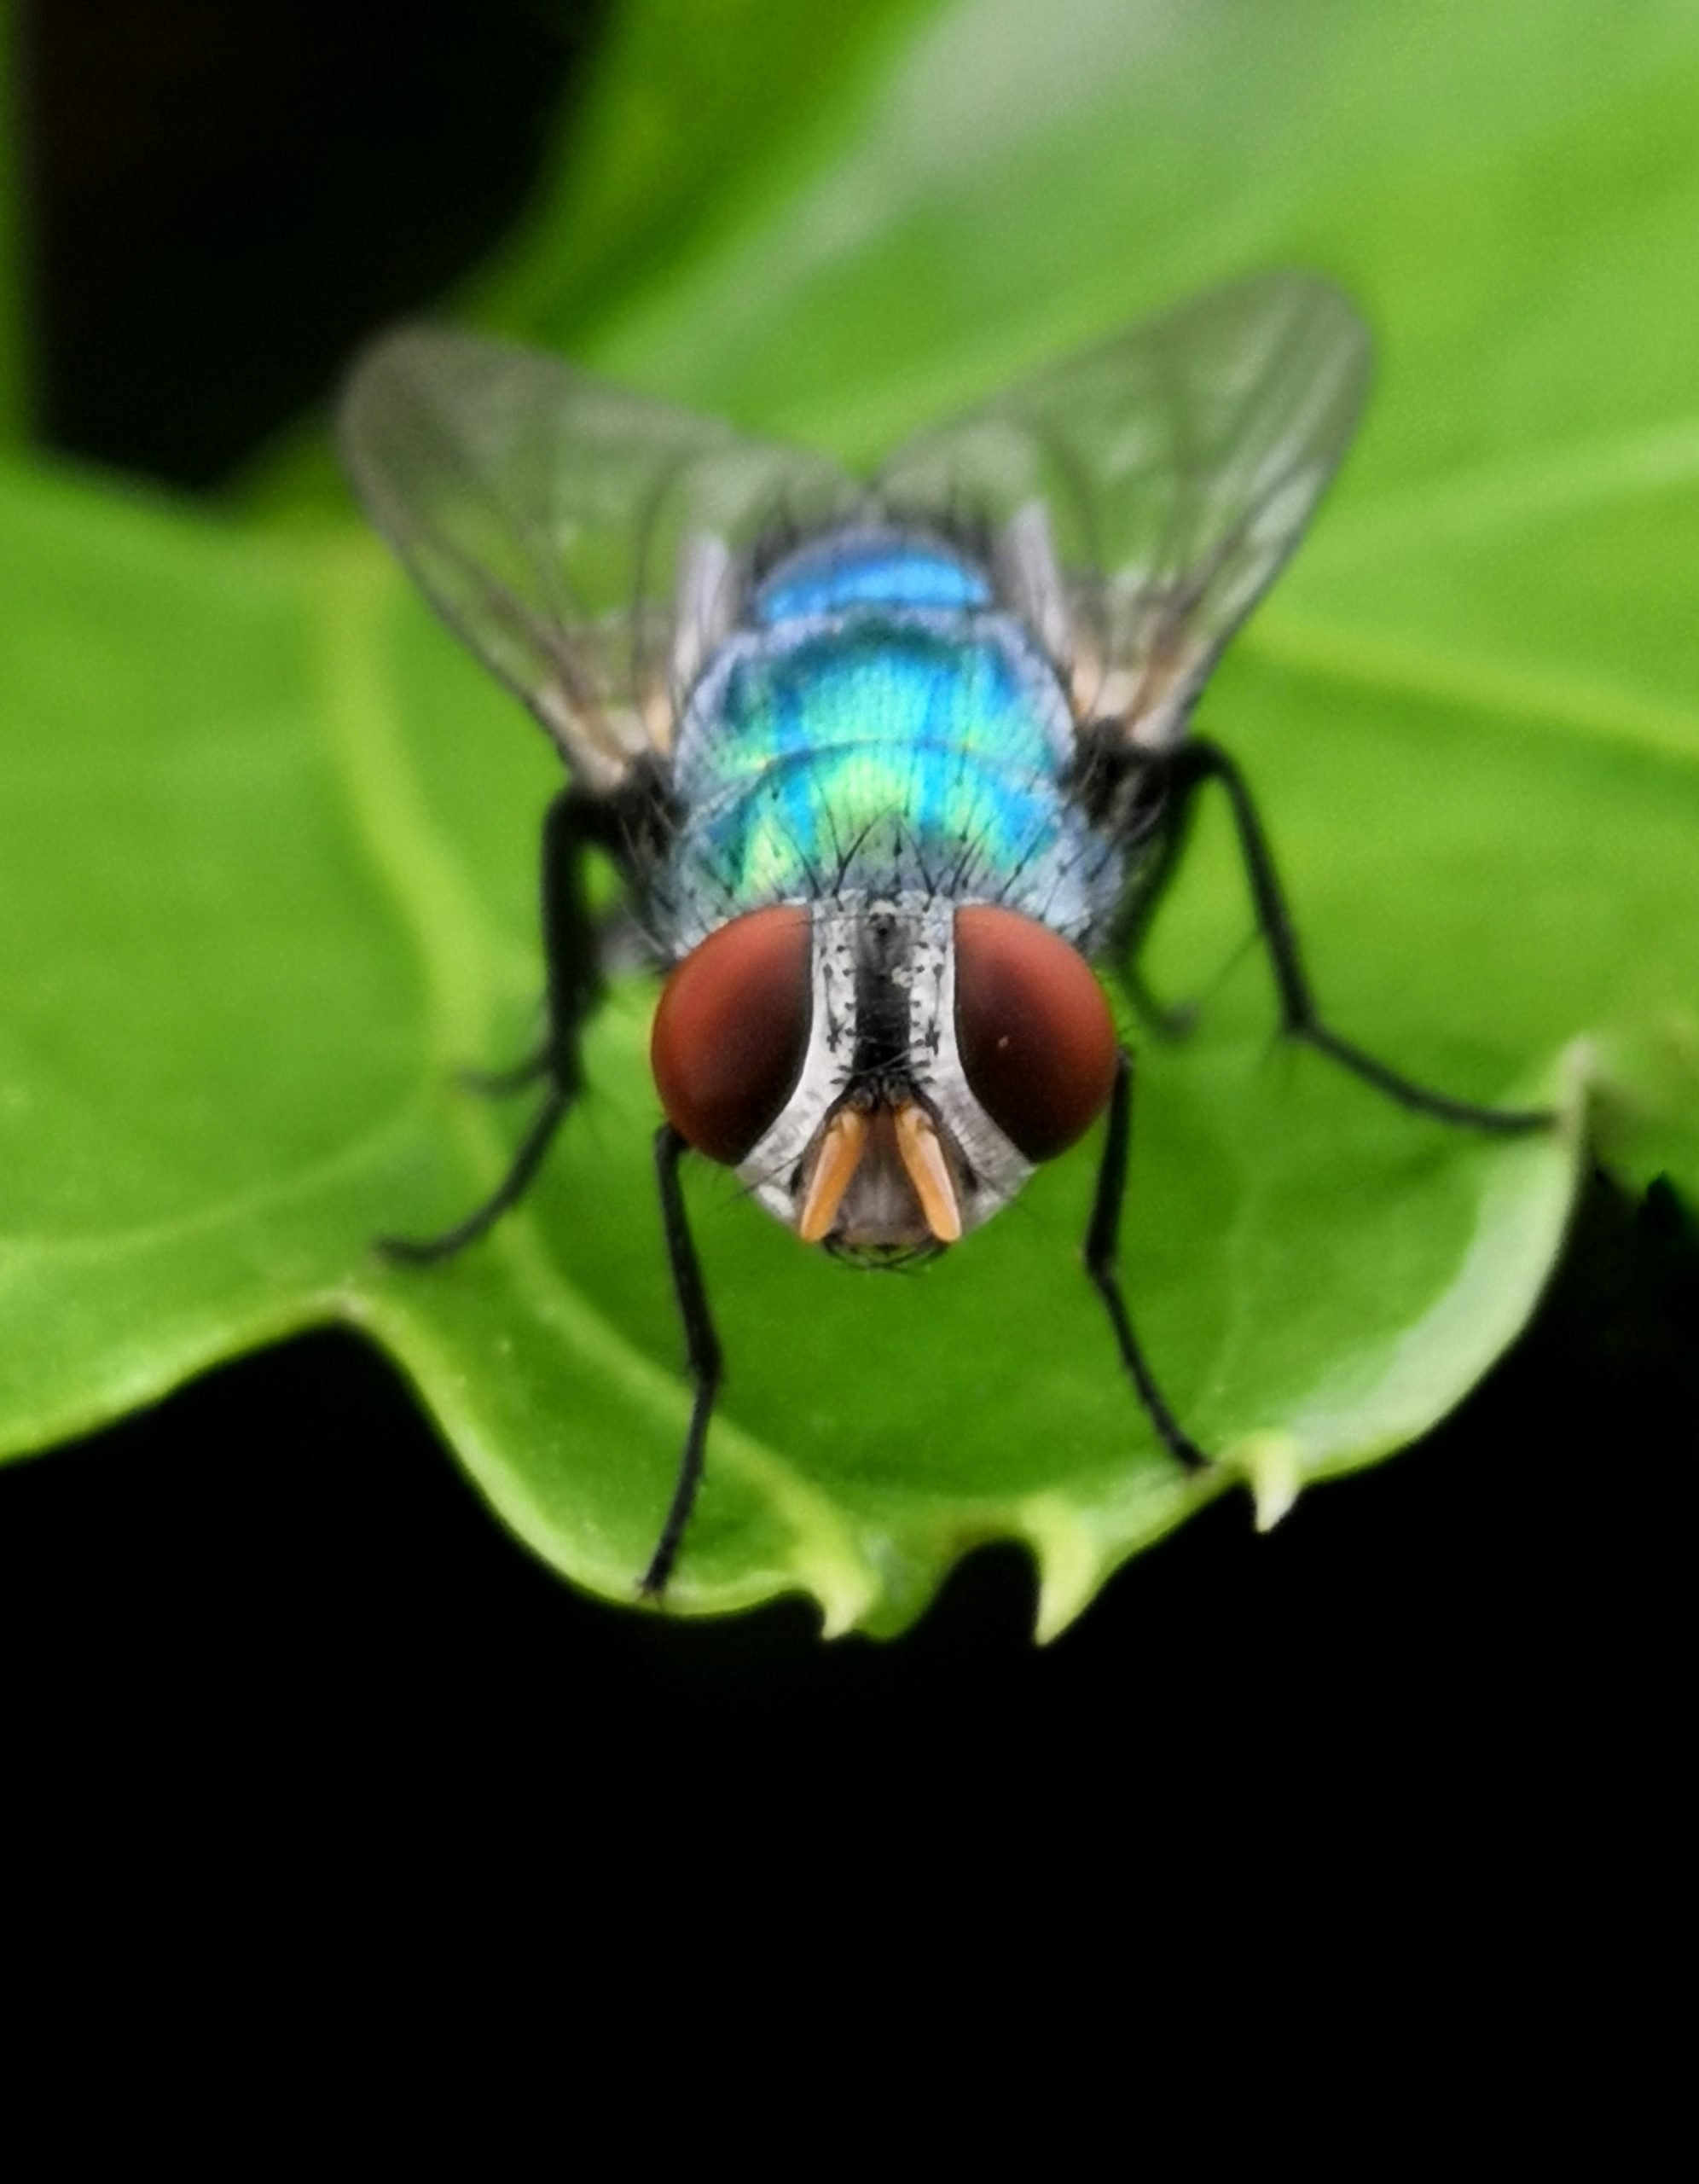 Close up of a housefly